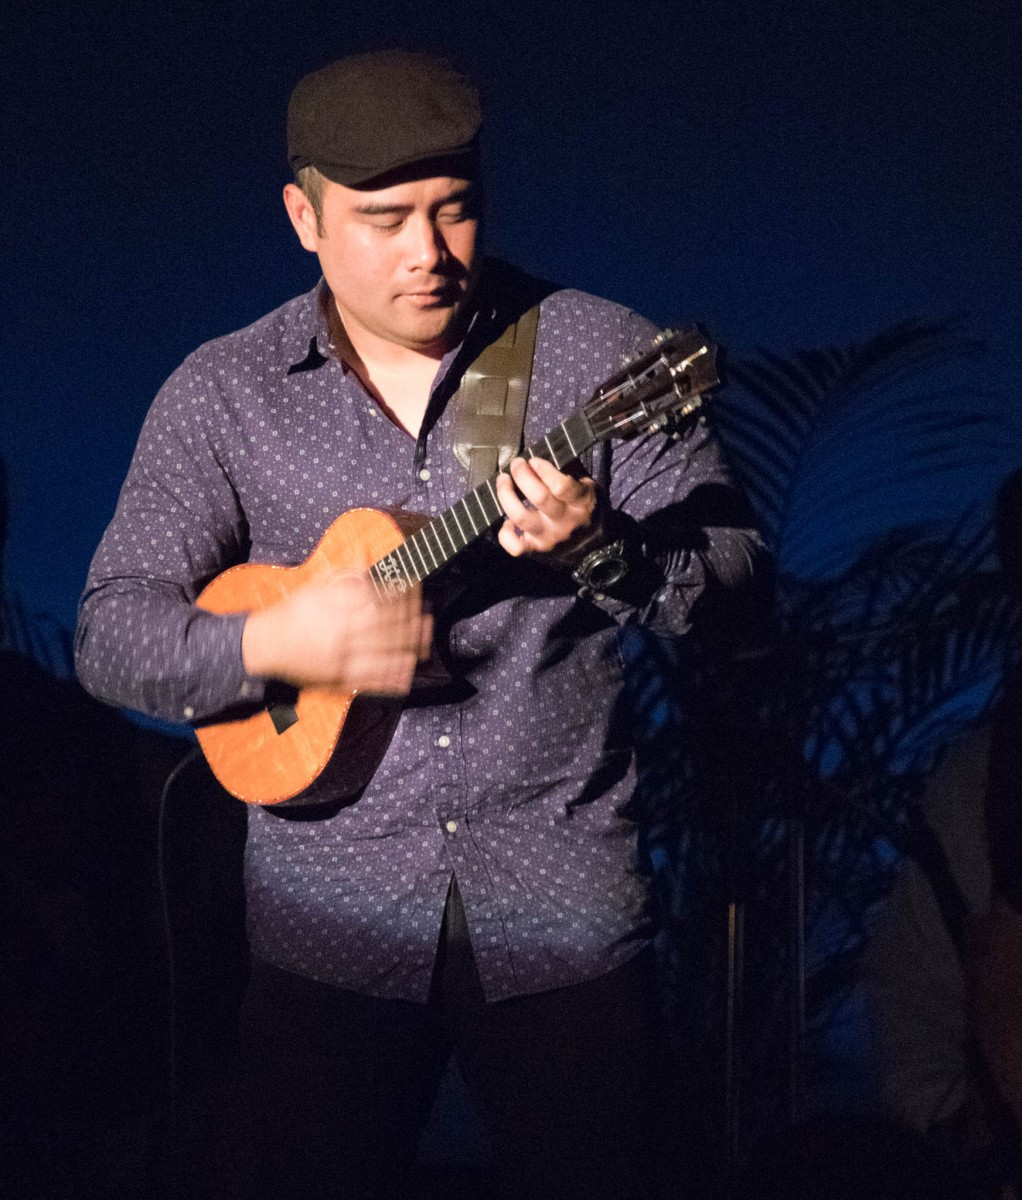 Royal Hawaiian Hotel Luau - World Renowned Ukulele Player